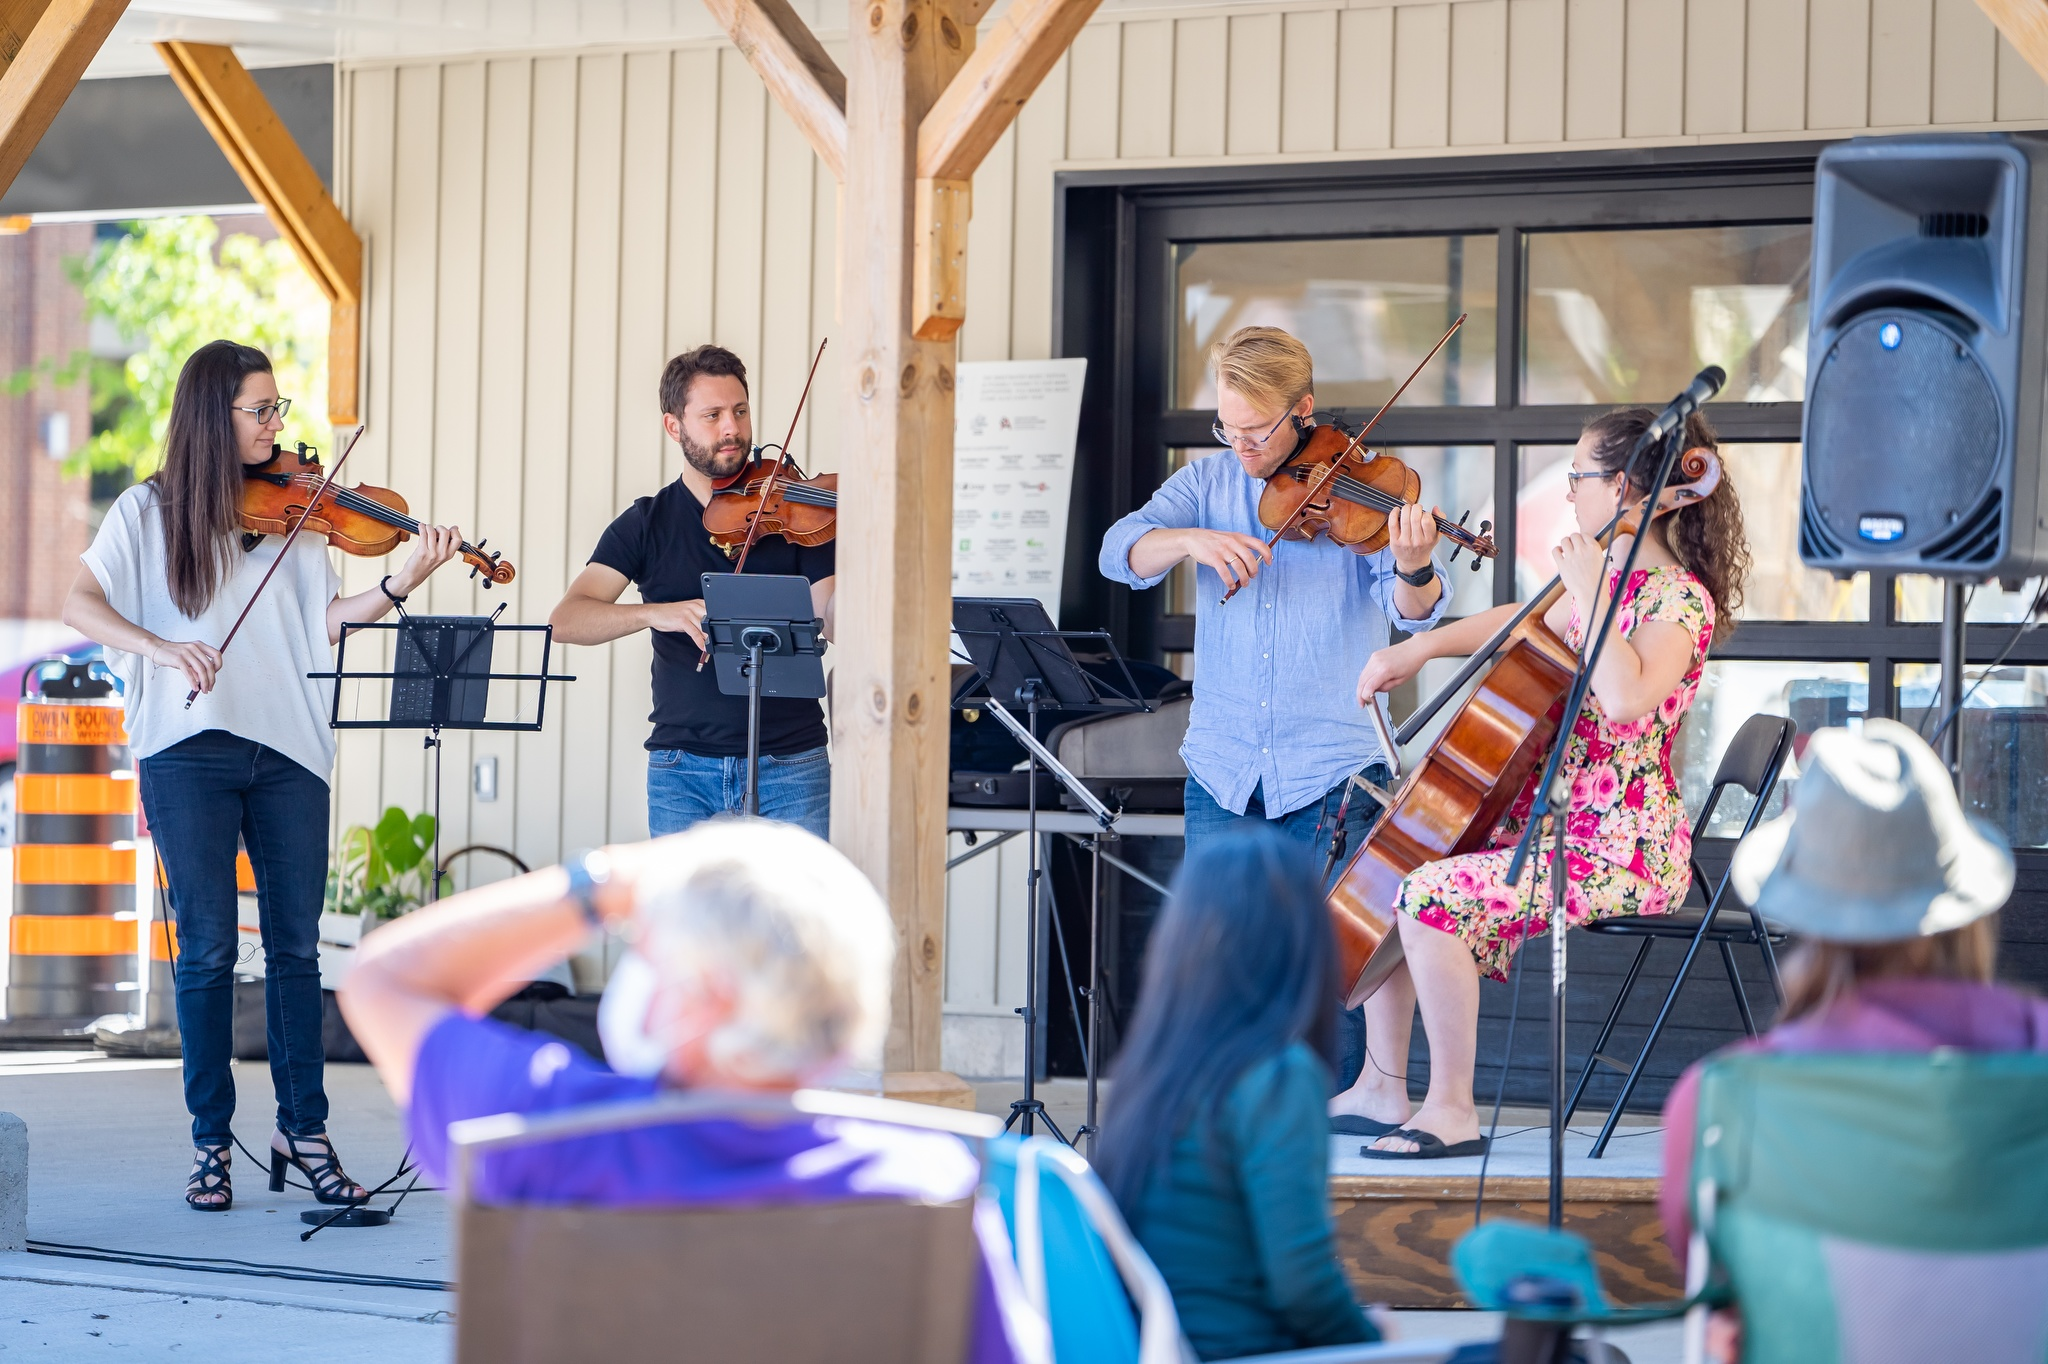 Rosebud String Quartet perform on instruments made by local luthiers at Sunday Community Concert.